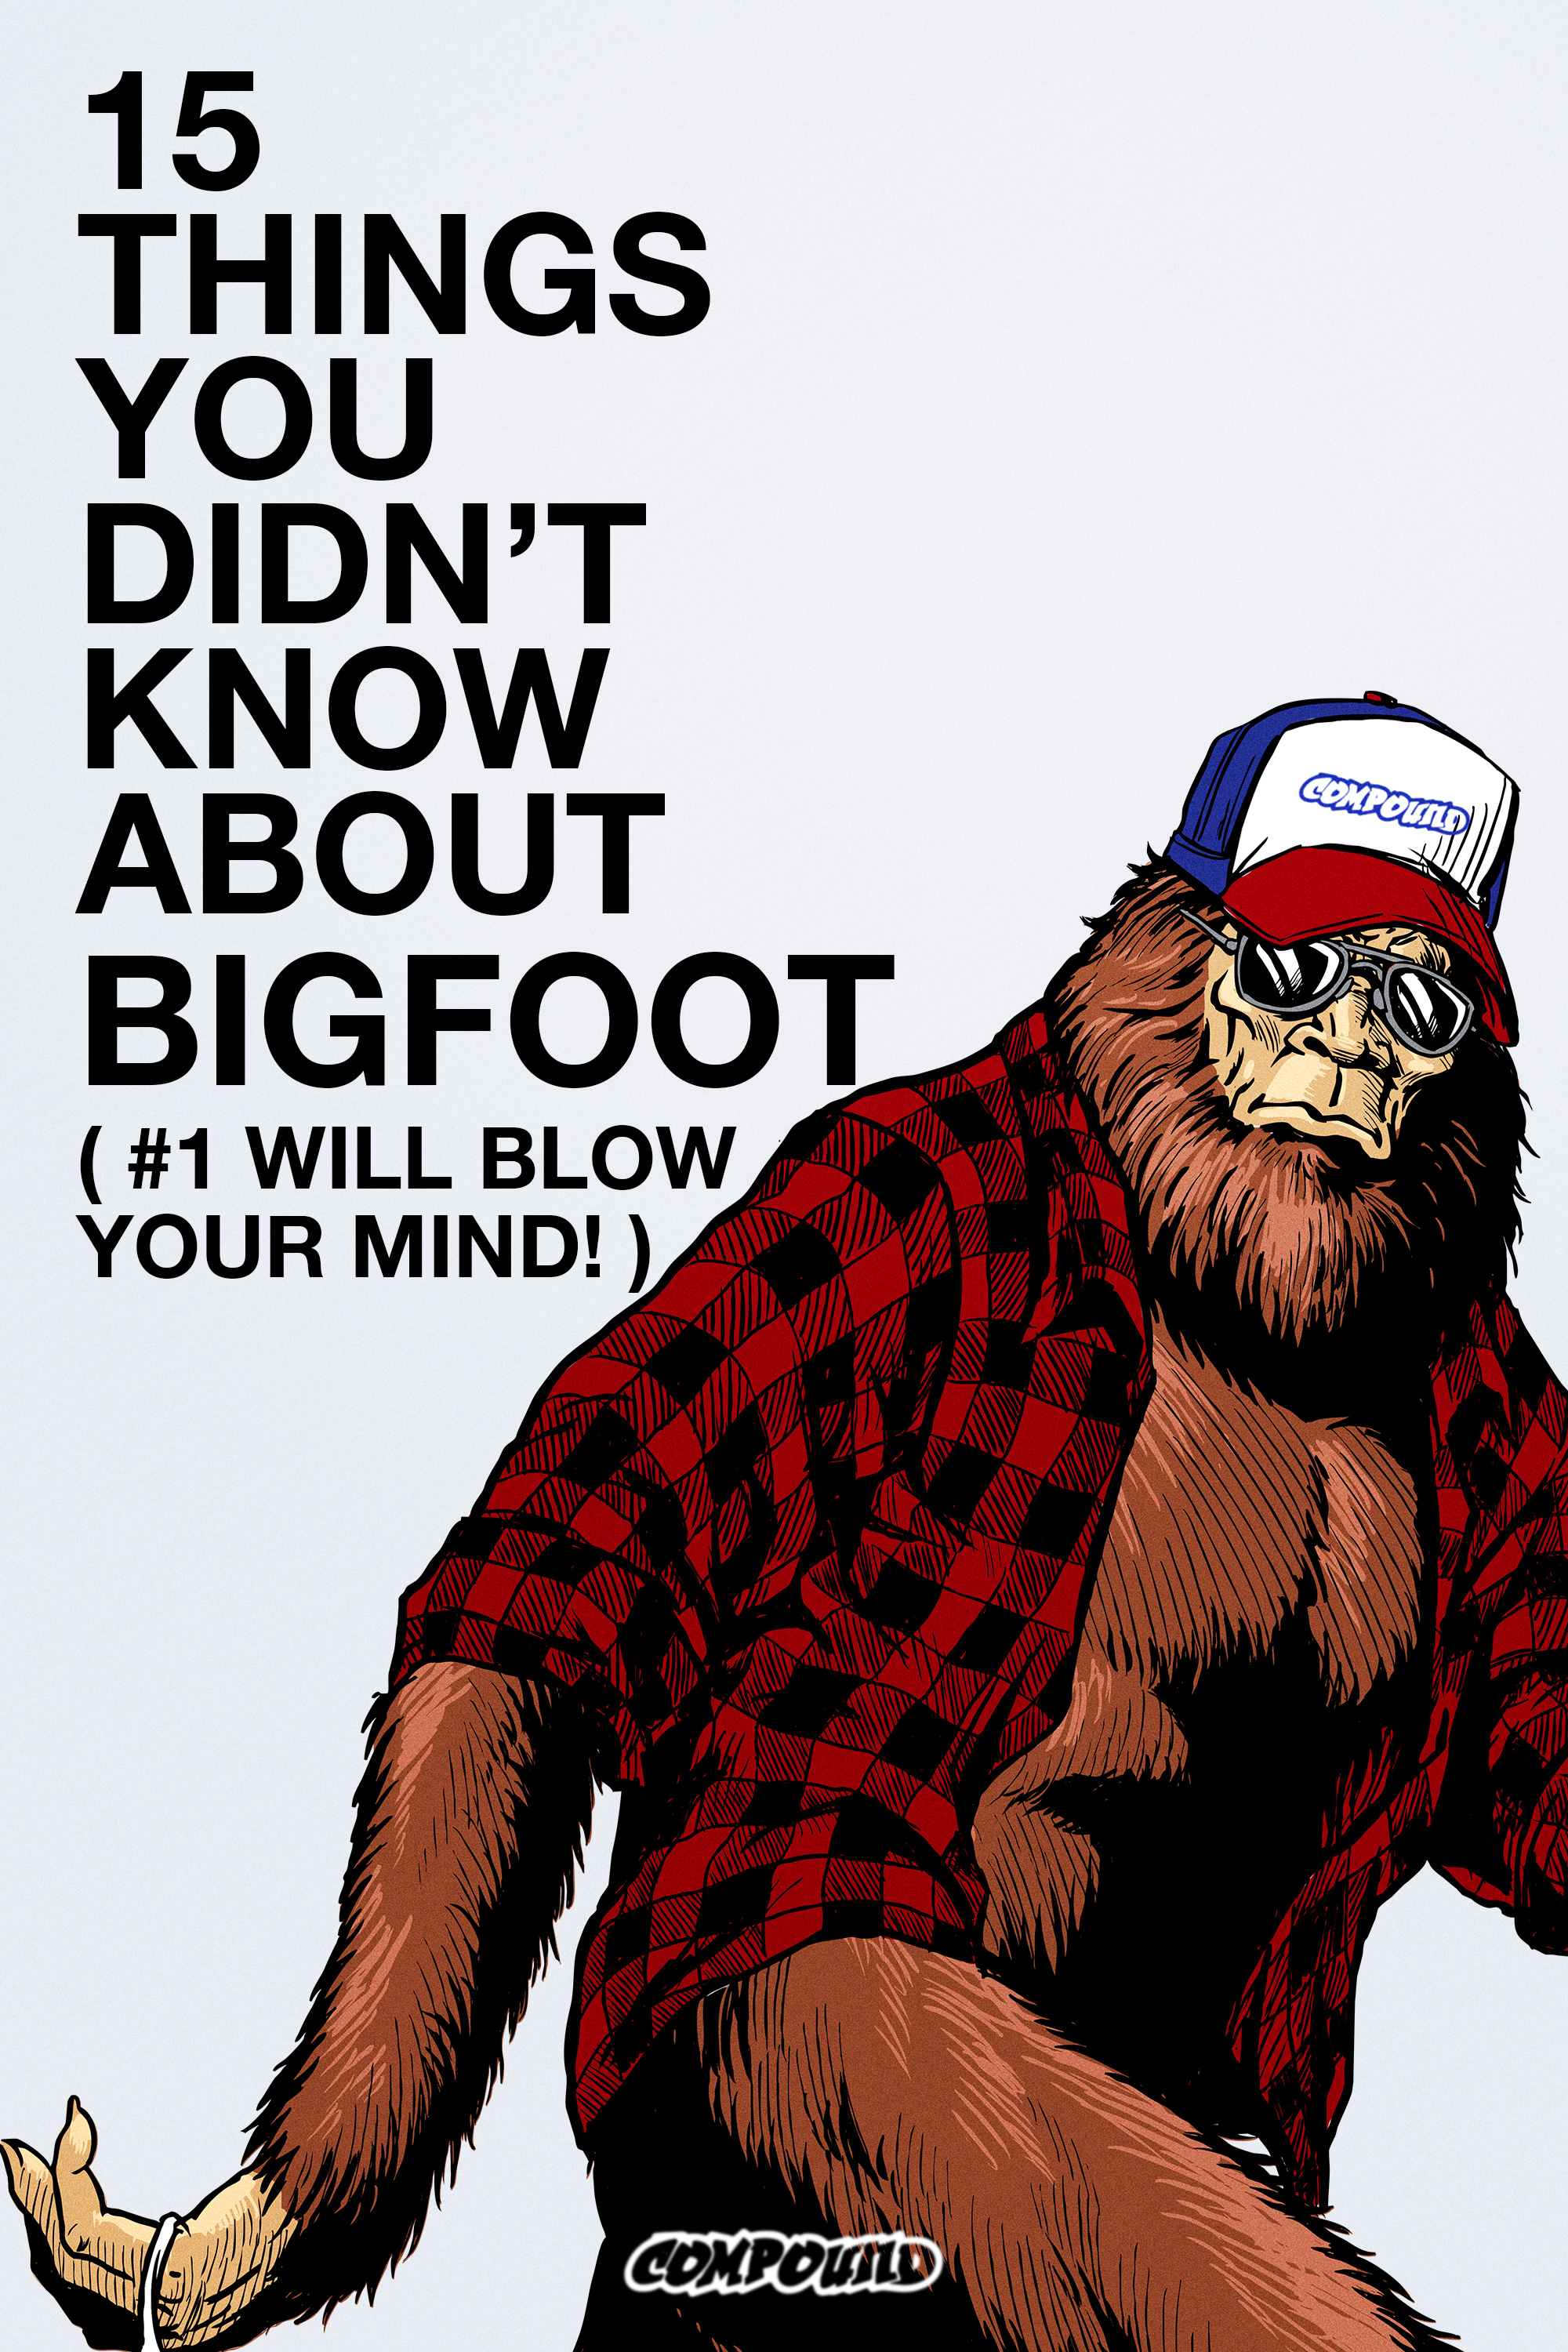 15 Things You Didn't Know About Bigfoot (Virtual Cinema)